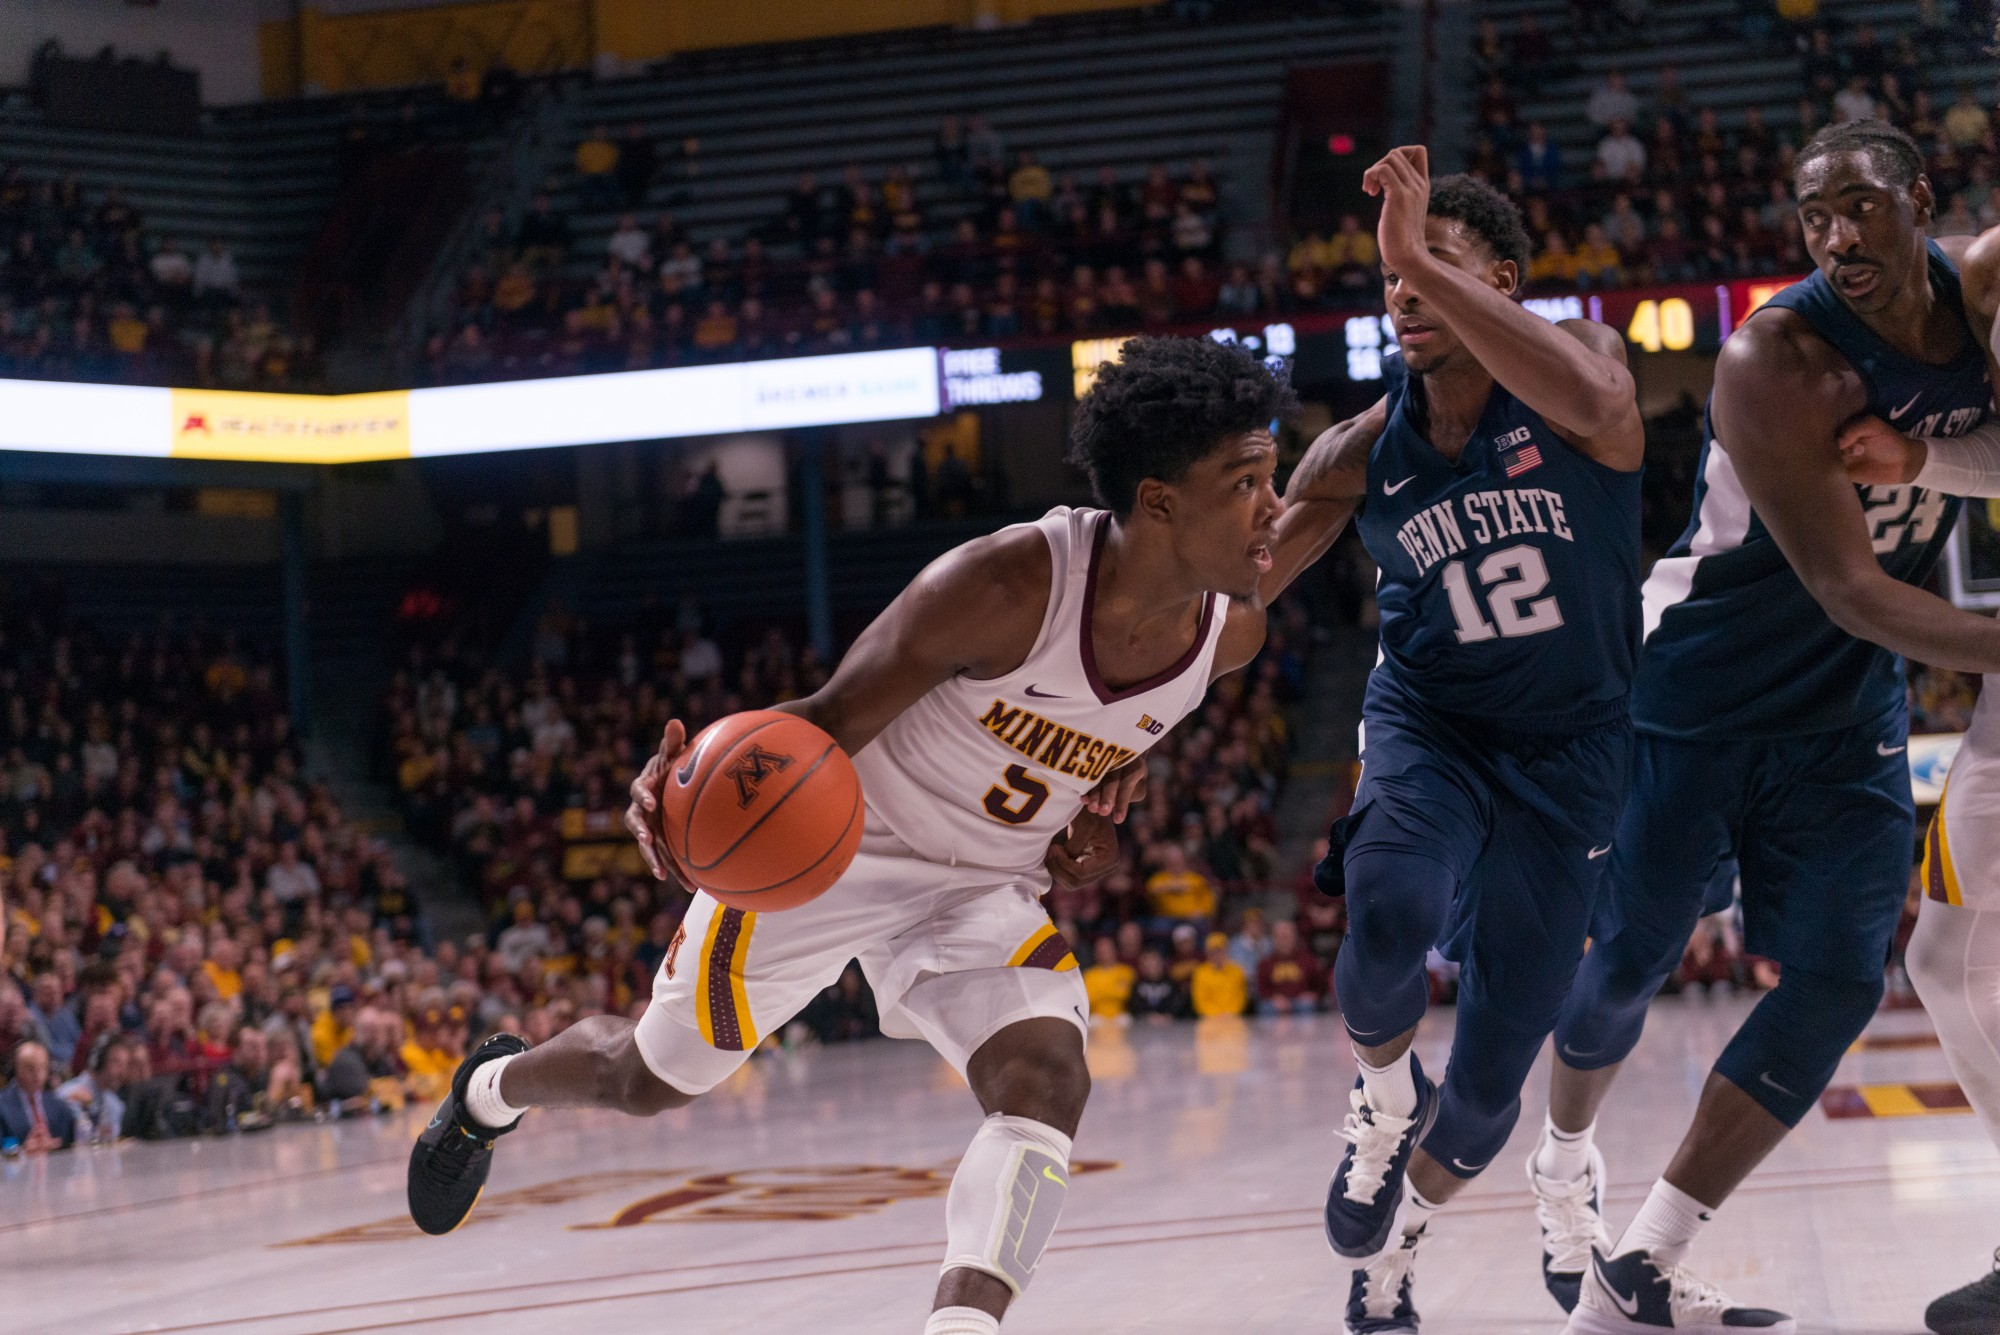 Gophers Guard Marcus Carr drives past a defender at Williams Arena on Wednesday, Jan. 15.  Minnesota defeated the Penn State Nittany Lions 75-69. (Kamaan Richards / Minnesota Daily)